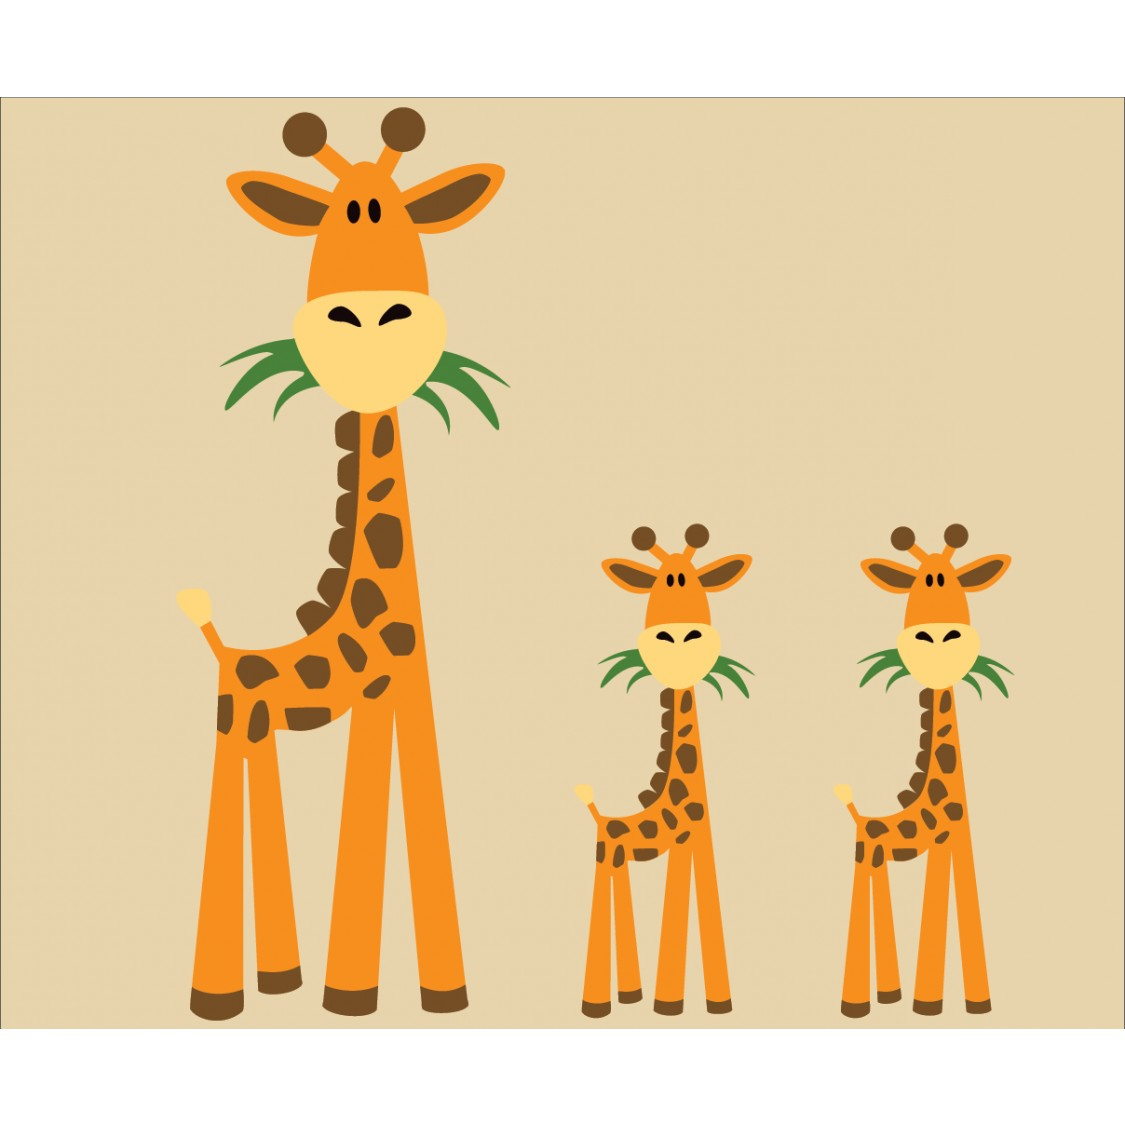 Buy Safari Wall Decals and Safari Wall Art to Create Your Own Mural.